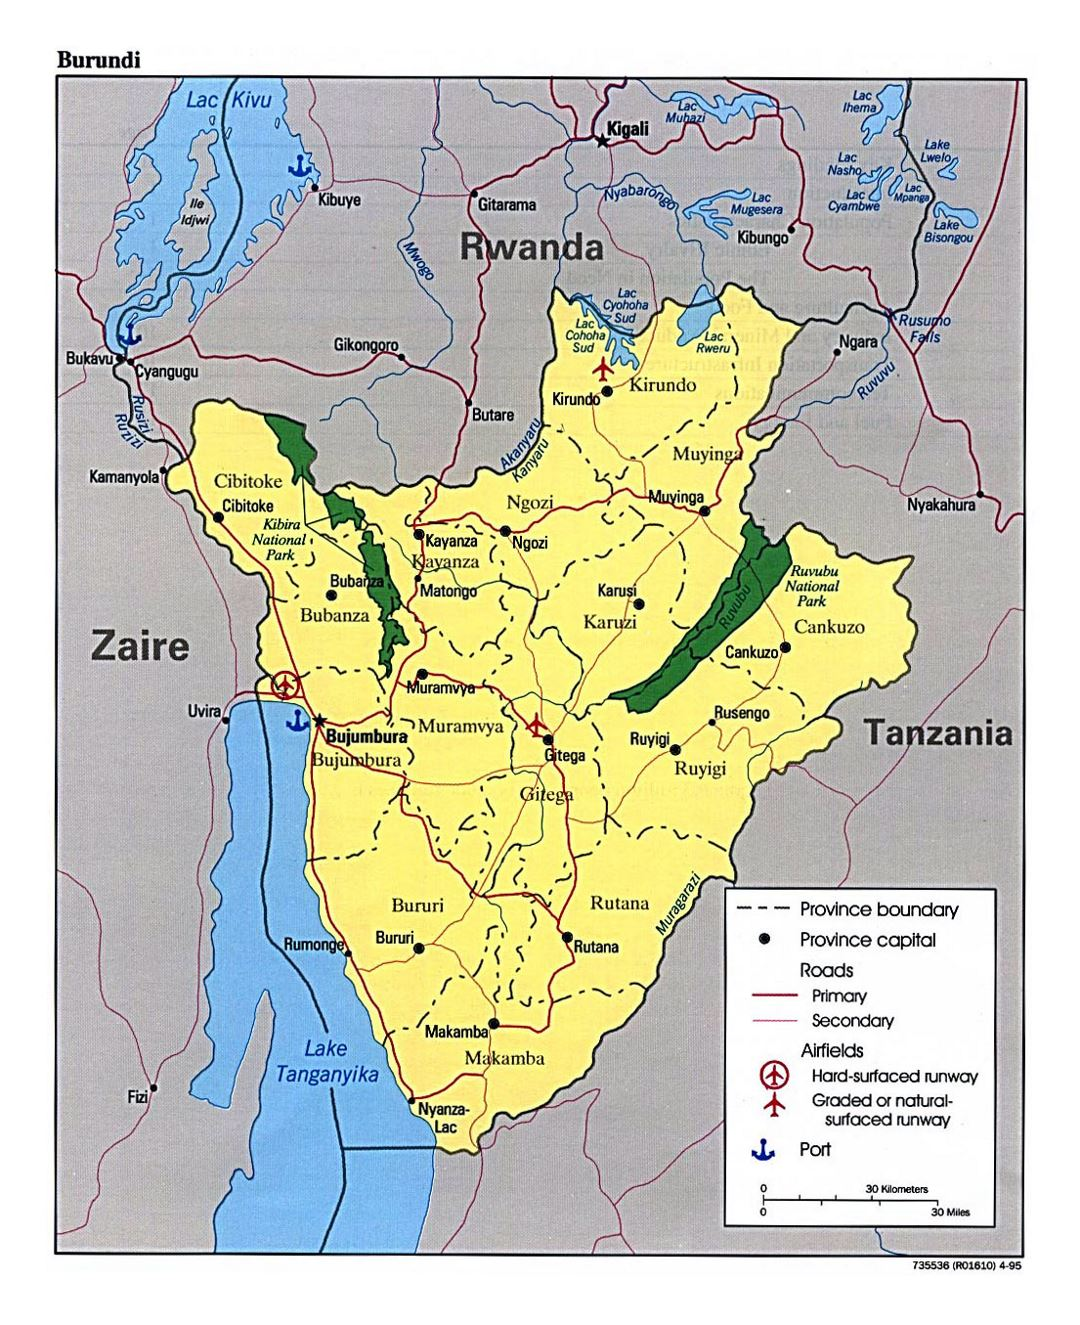 Detailed map of Burundi with administrative divisions, roads, major cities, airports and ports - 1995